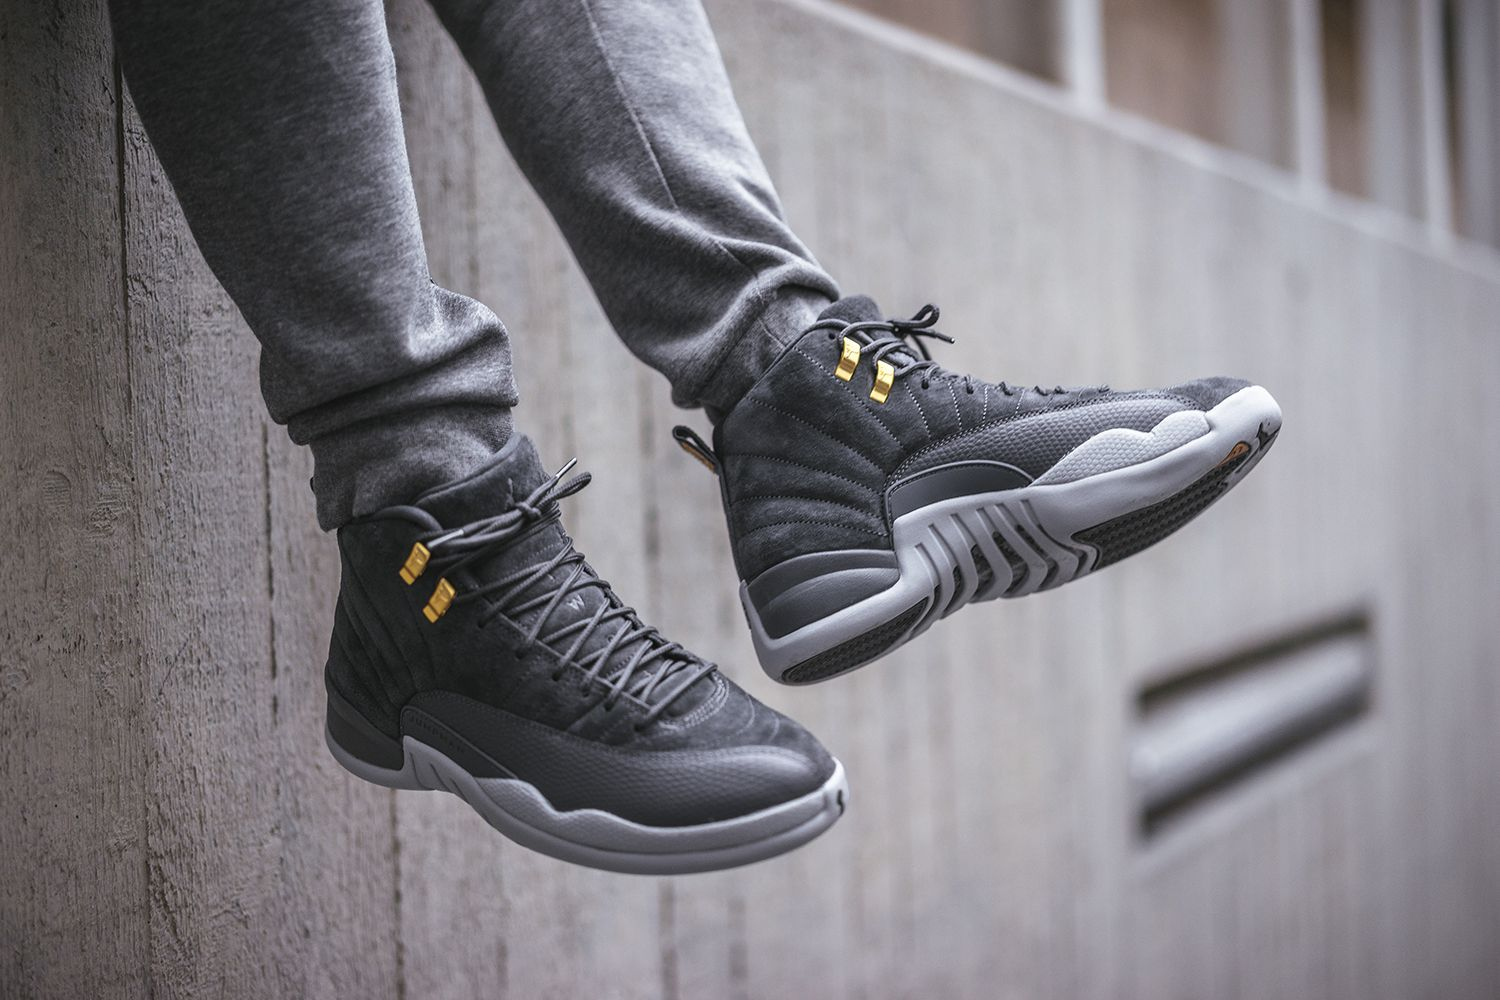 c70d51bc059 Air Jordan 12 Dark Grey coming soon. Who will cop    by  bstnstore